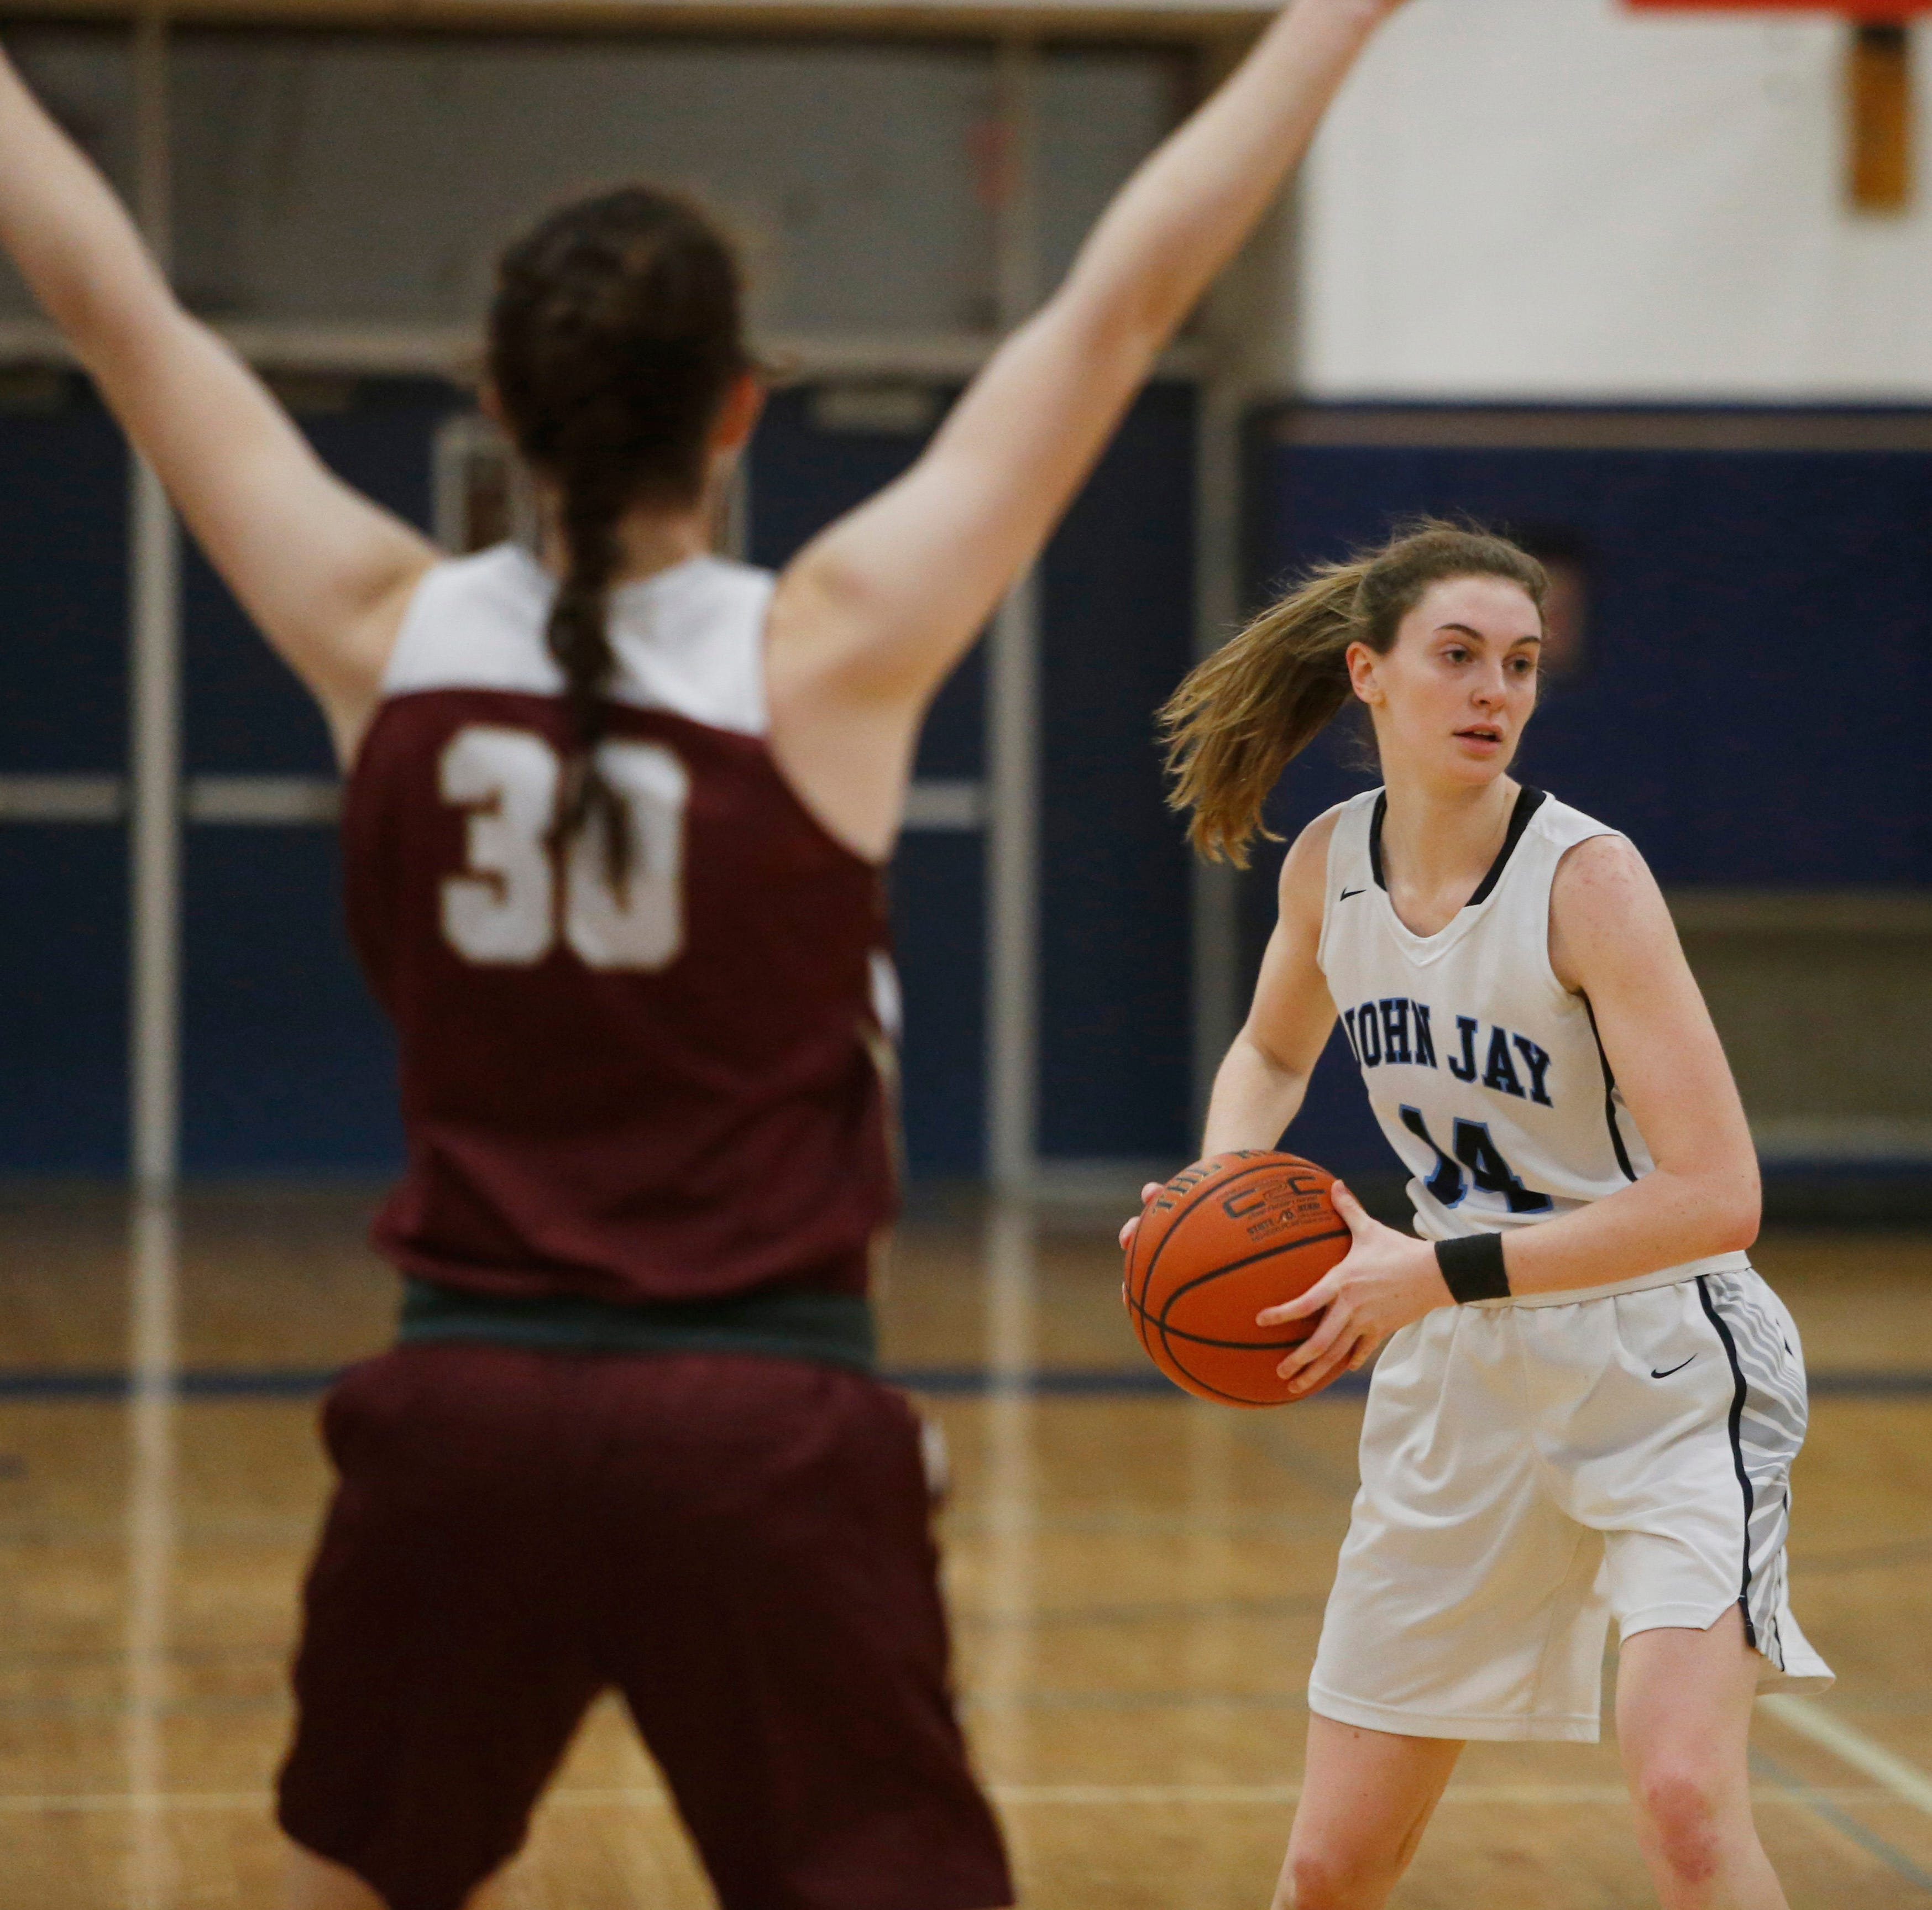 John Jay's Haley Karst looks to pass the ball as Arlington's Emily Mahon covers her during Wednesday's game in Wiccopee on January 23, 2019.